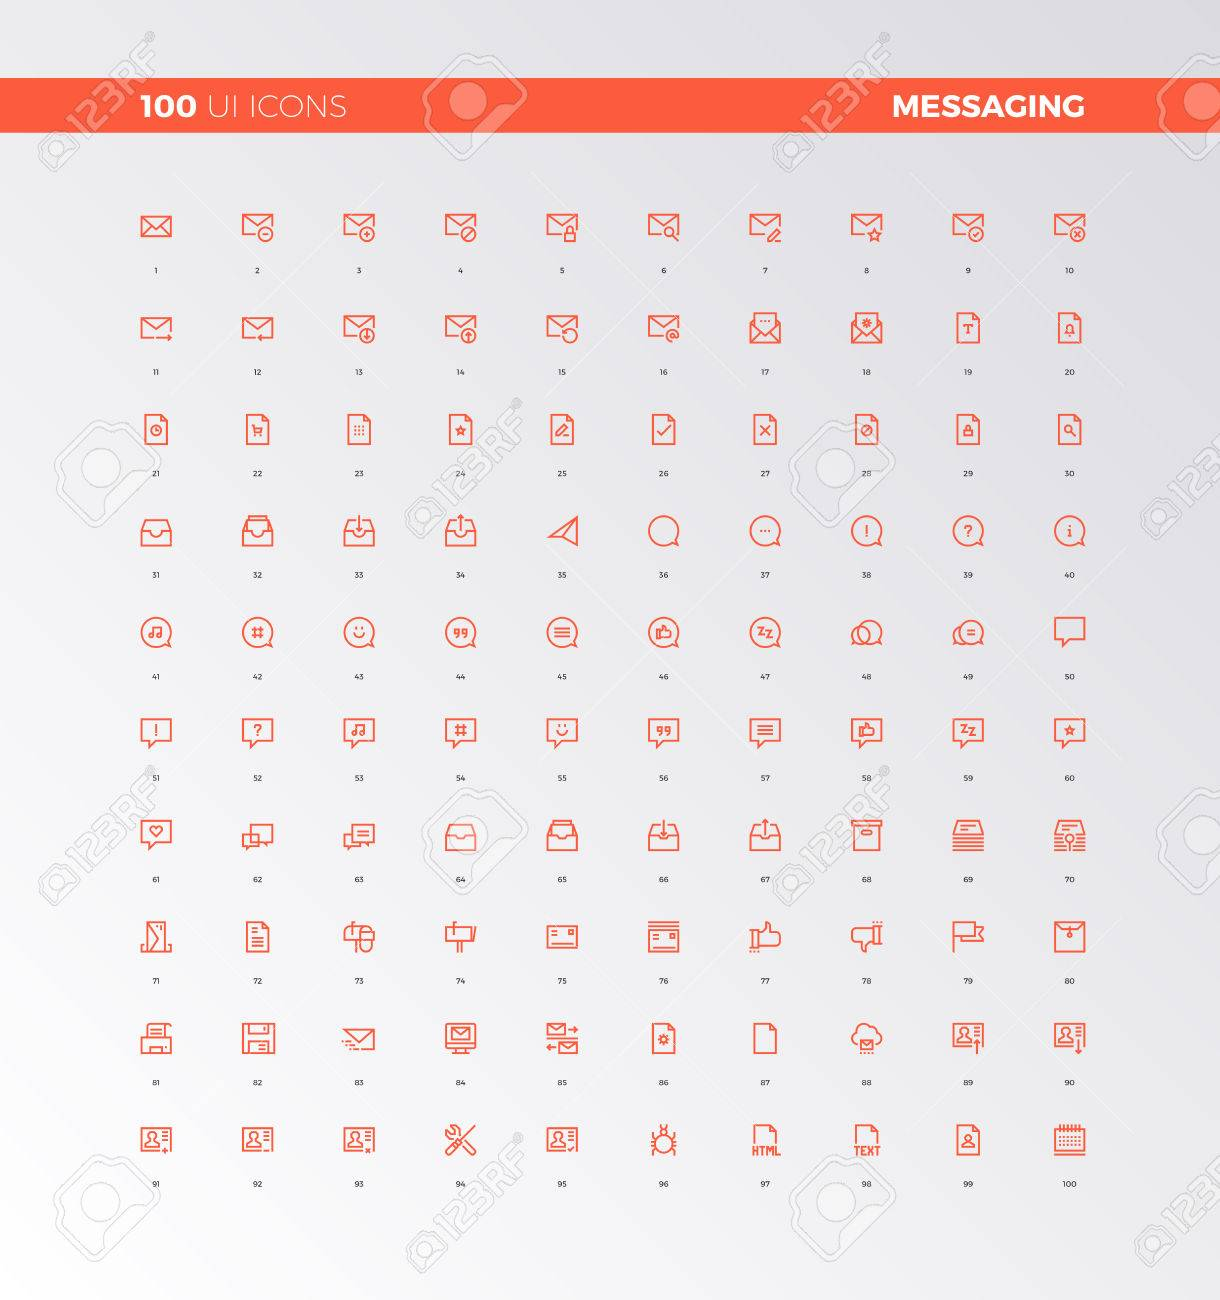 Ui icons collection messaging and chatting elements ux messaging and chatting elements ux pictograms for user interface web biocorpaavc